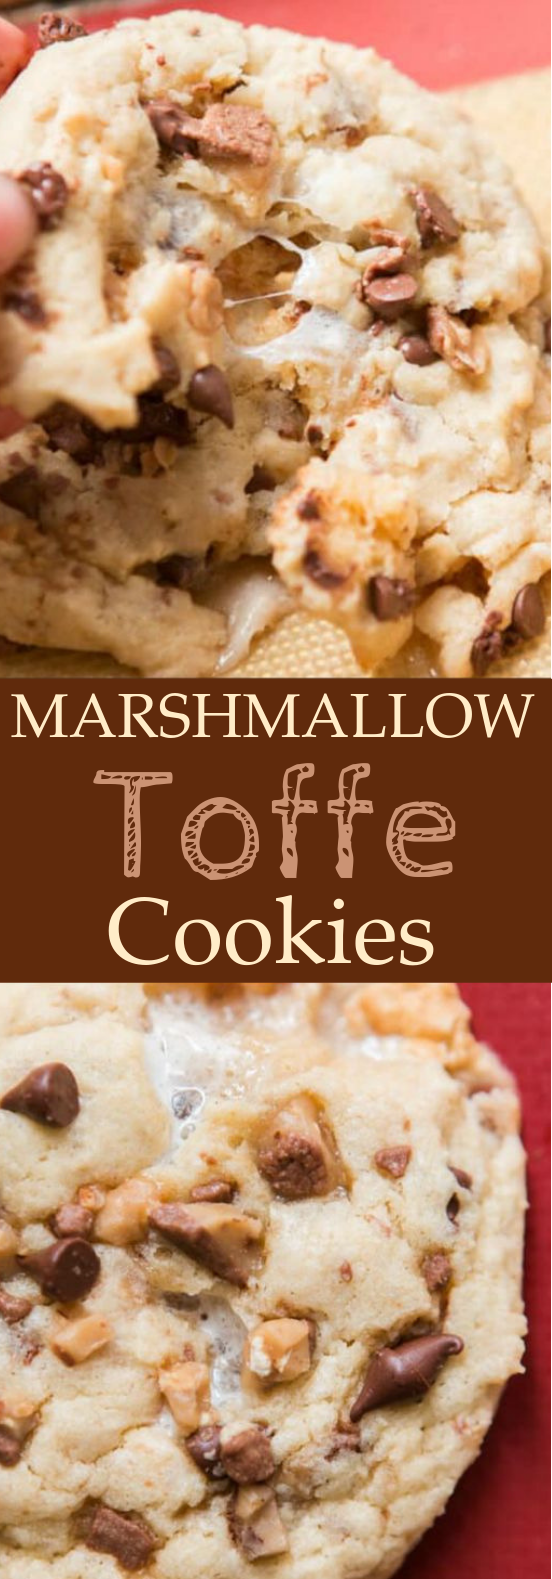 Marshmallow Toffee Cookies #cookies #desserts